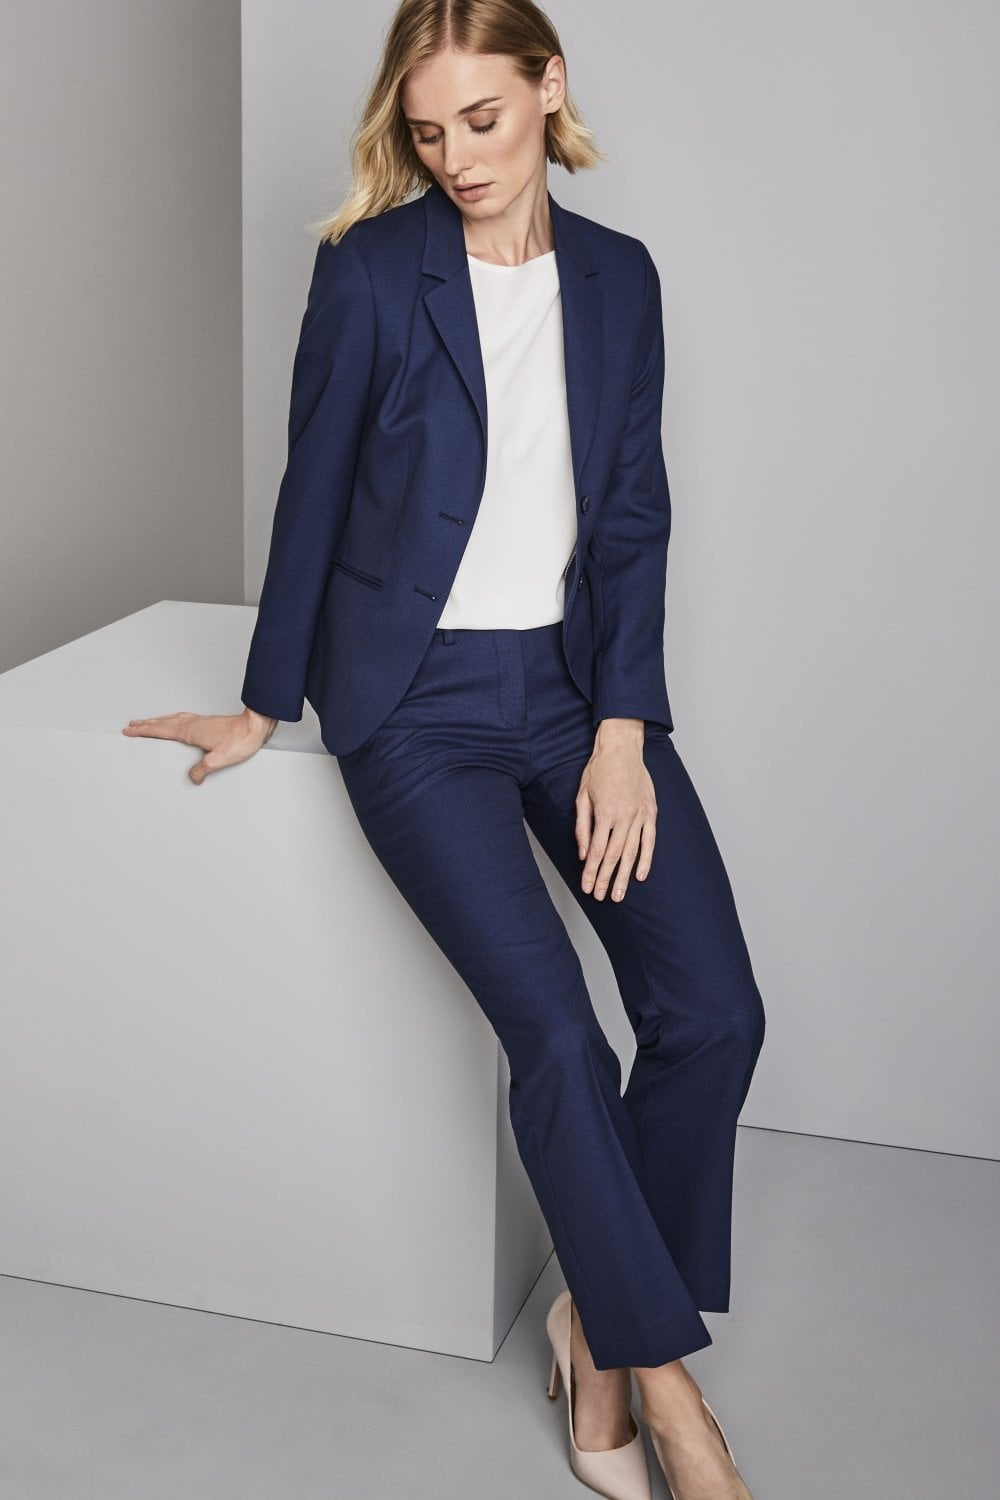 2e7c03b056b Contemporary Women's Blue Suit - SUITS from Simon Jersey UK